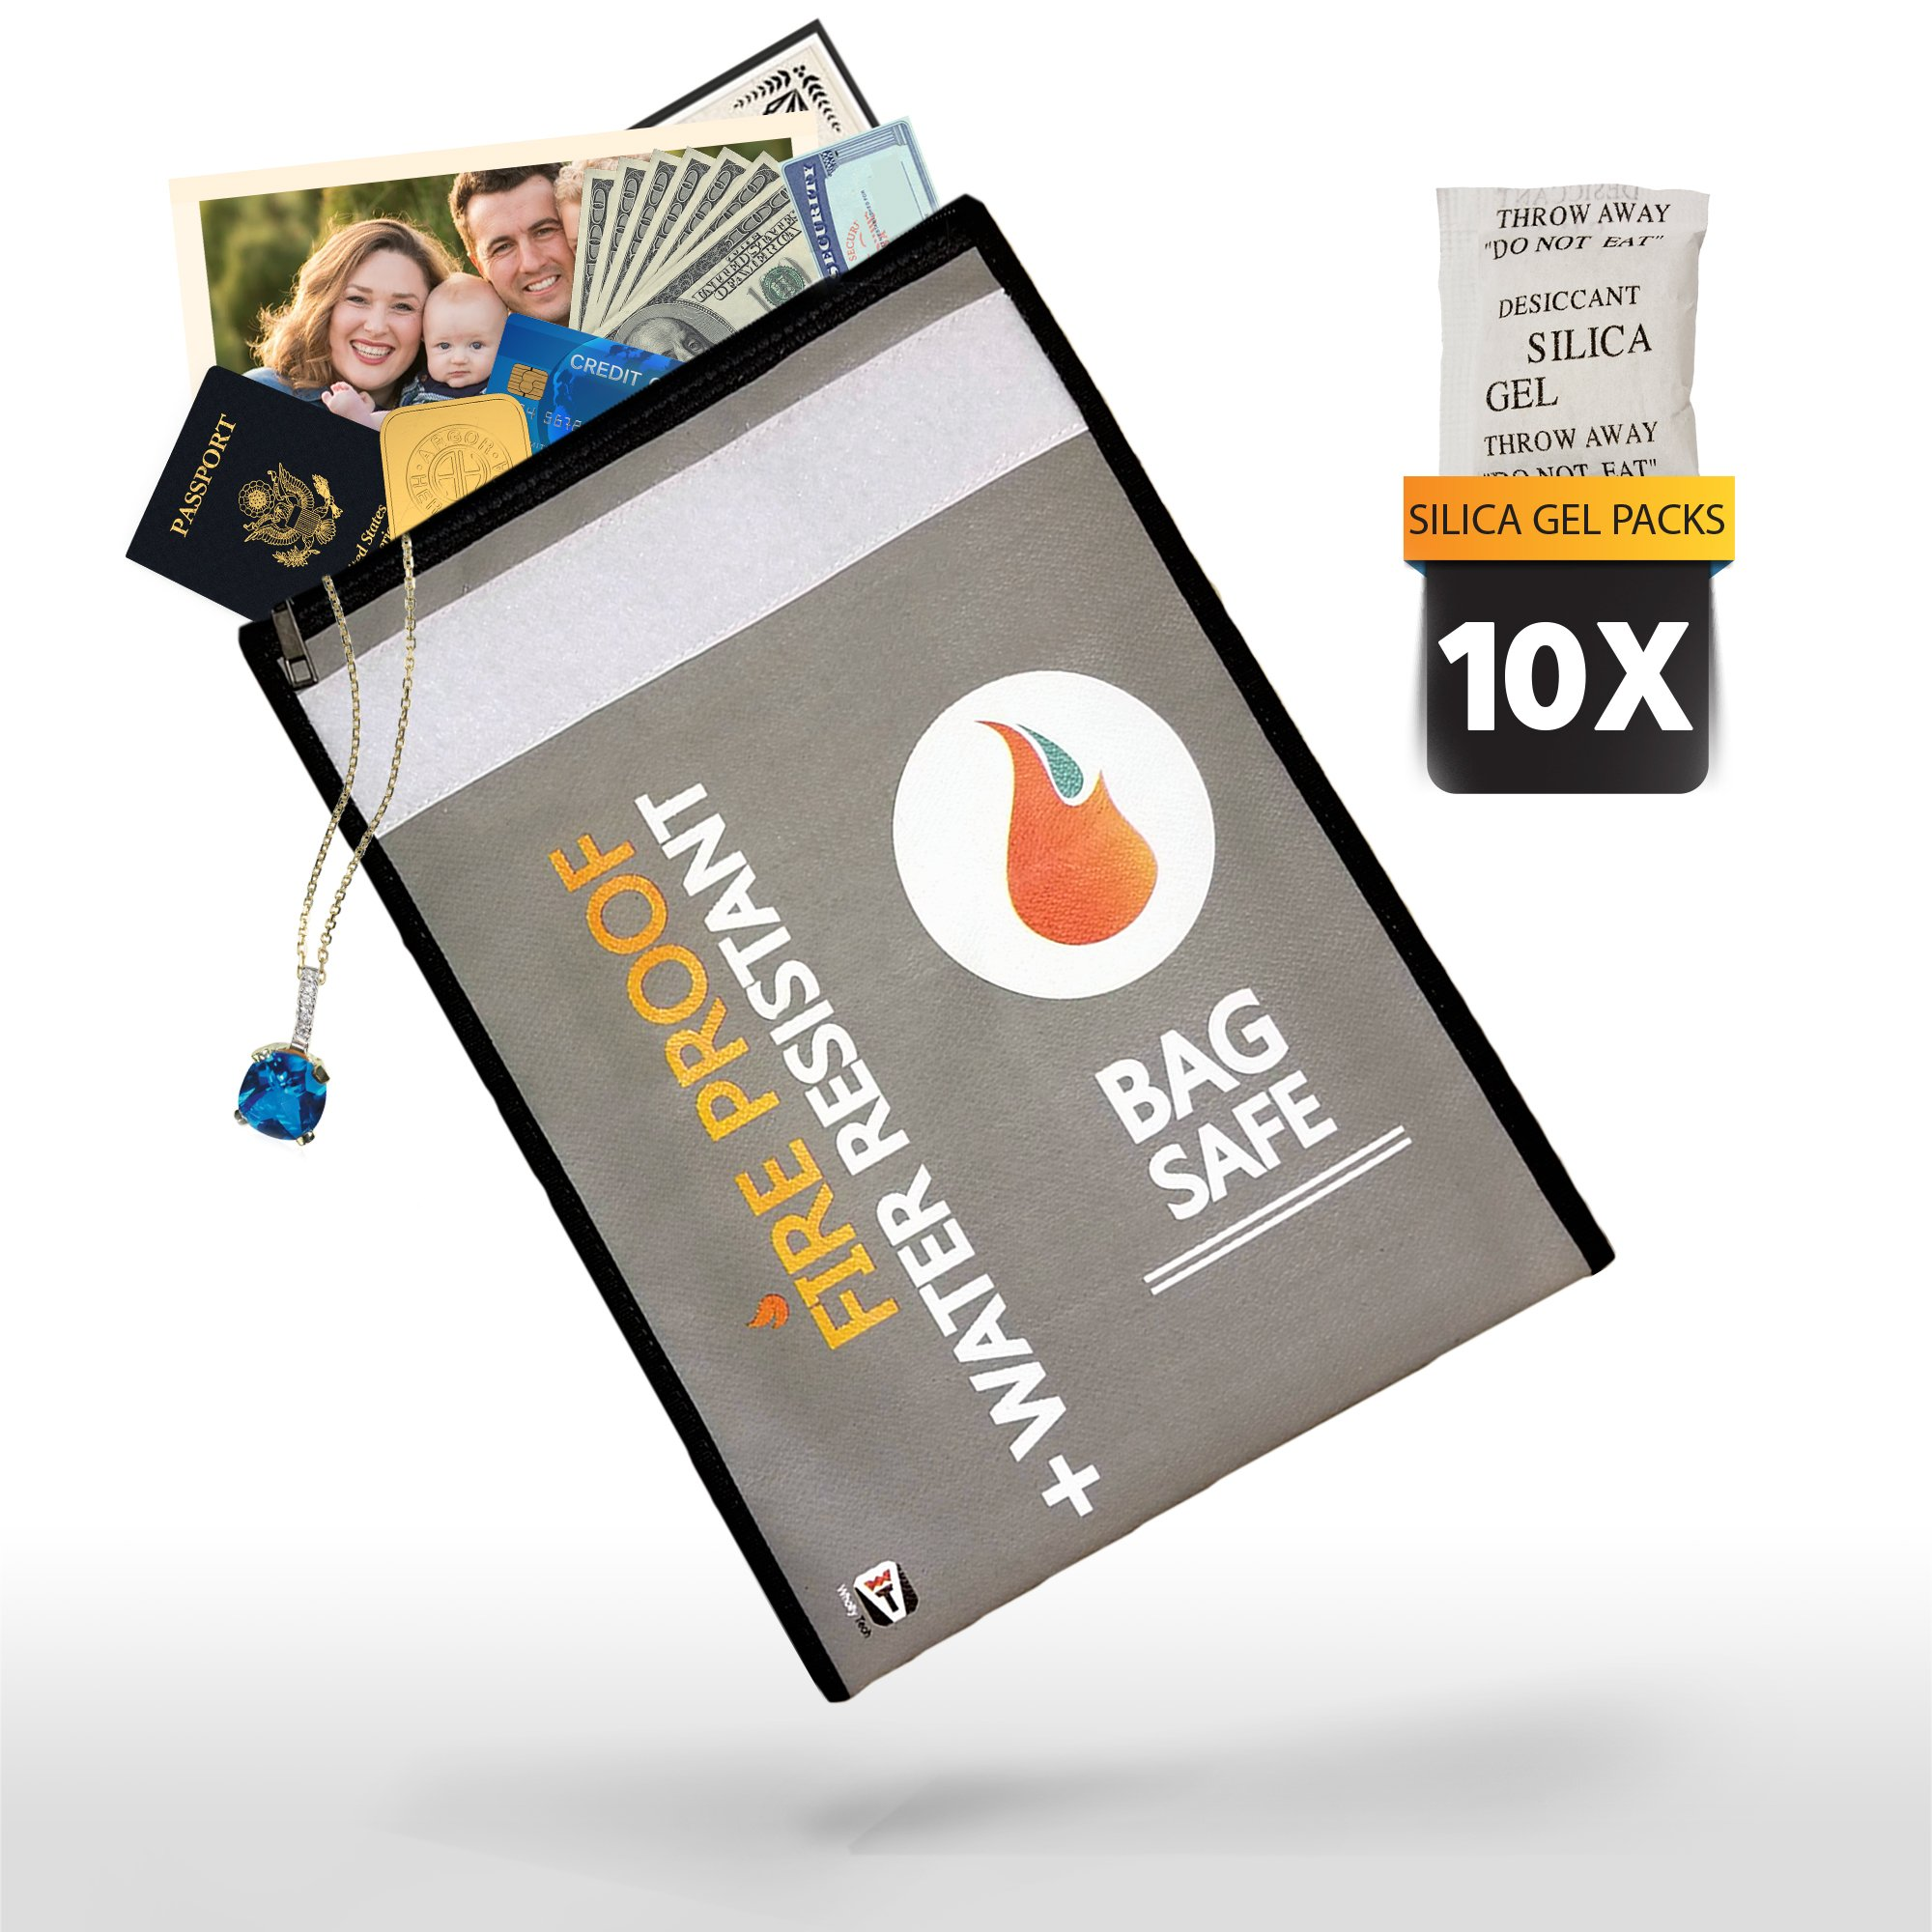 Fireproof Document Bag 15'' x 11''. Non-Itchy Money Bag with Zipper and Moisture Absorber Packs. Fireproof Safe Storage for Money, Documents, Jewelry and LiPo